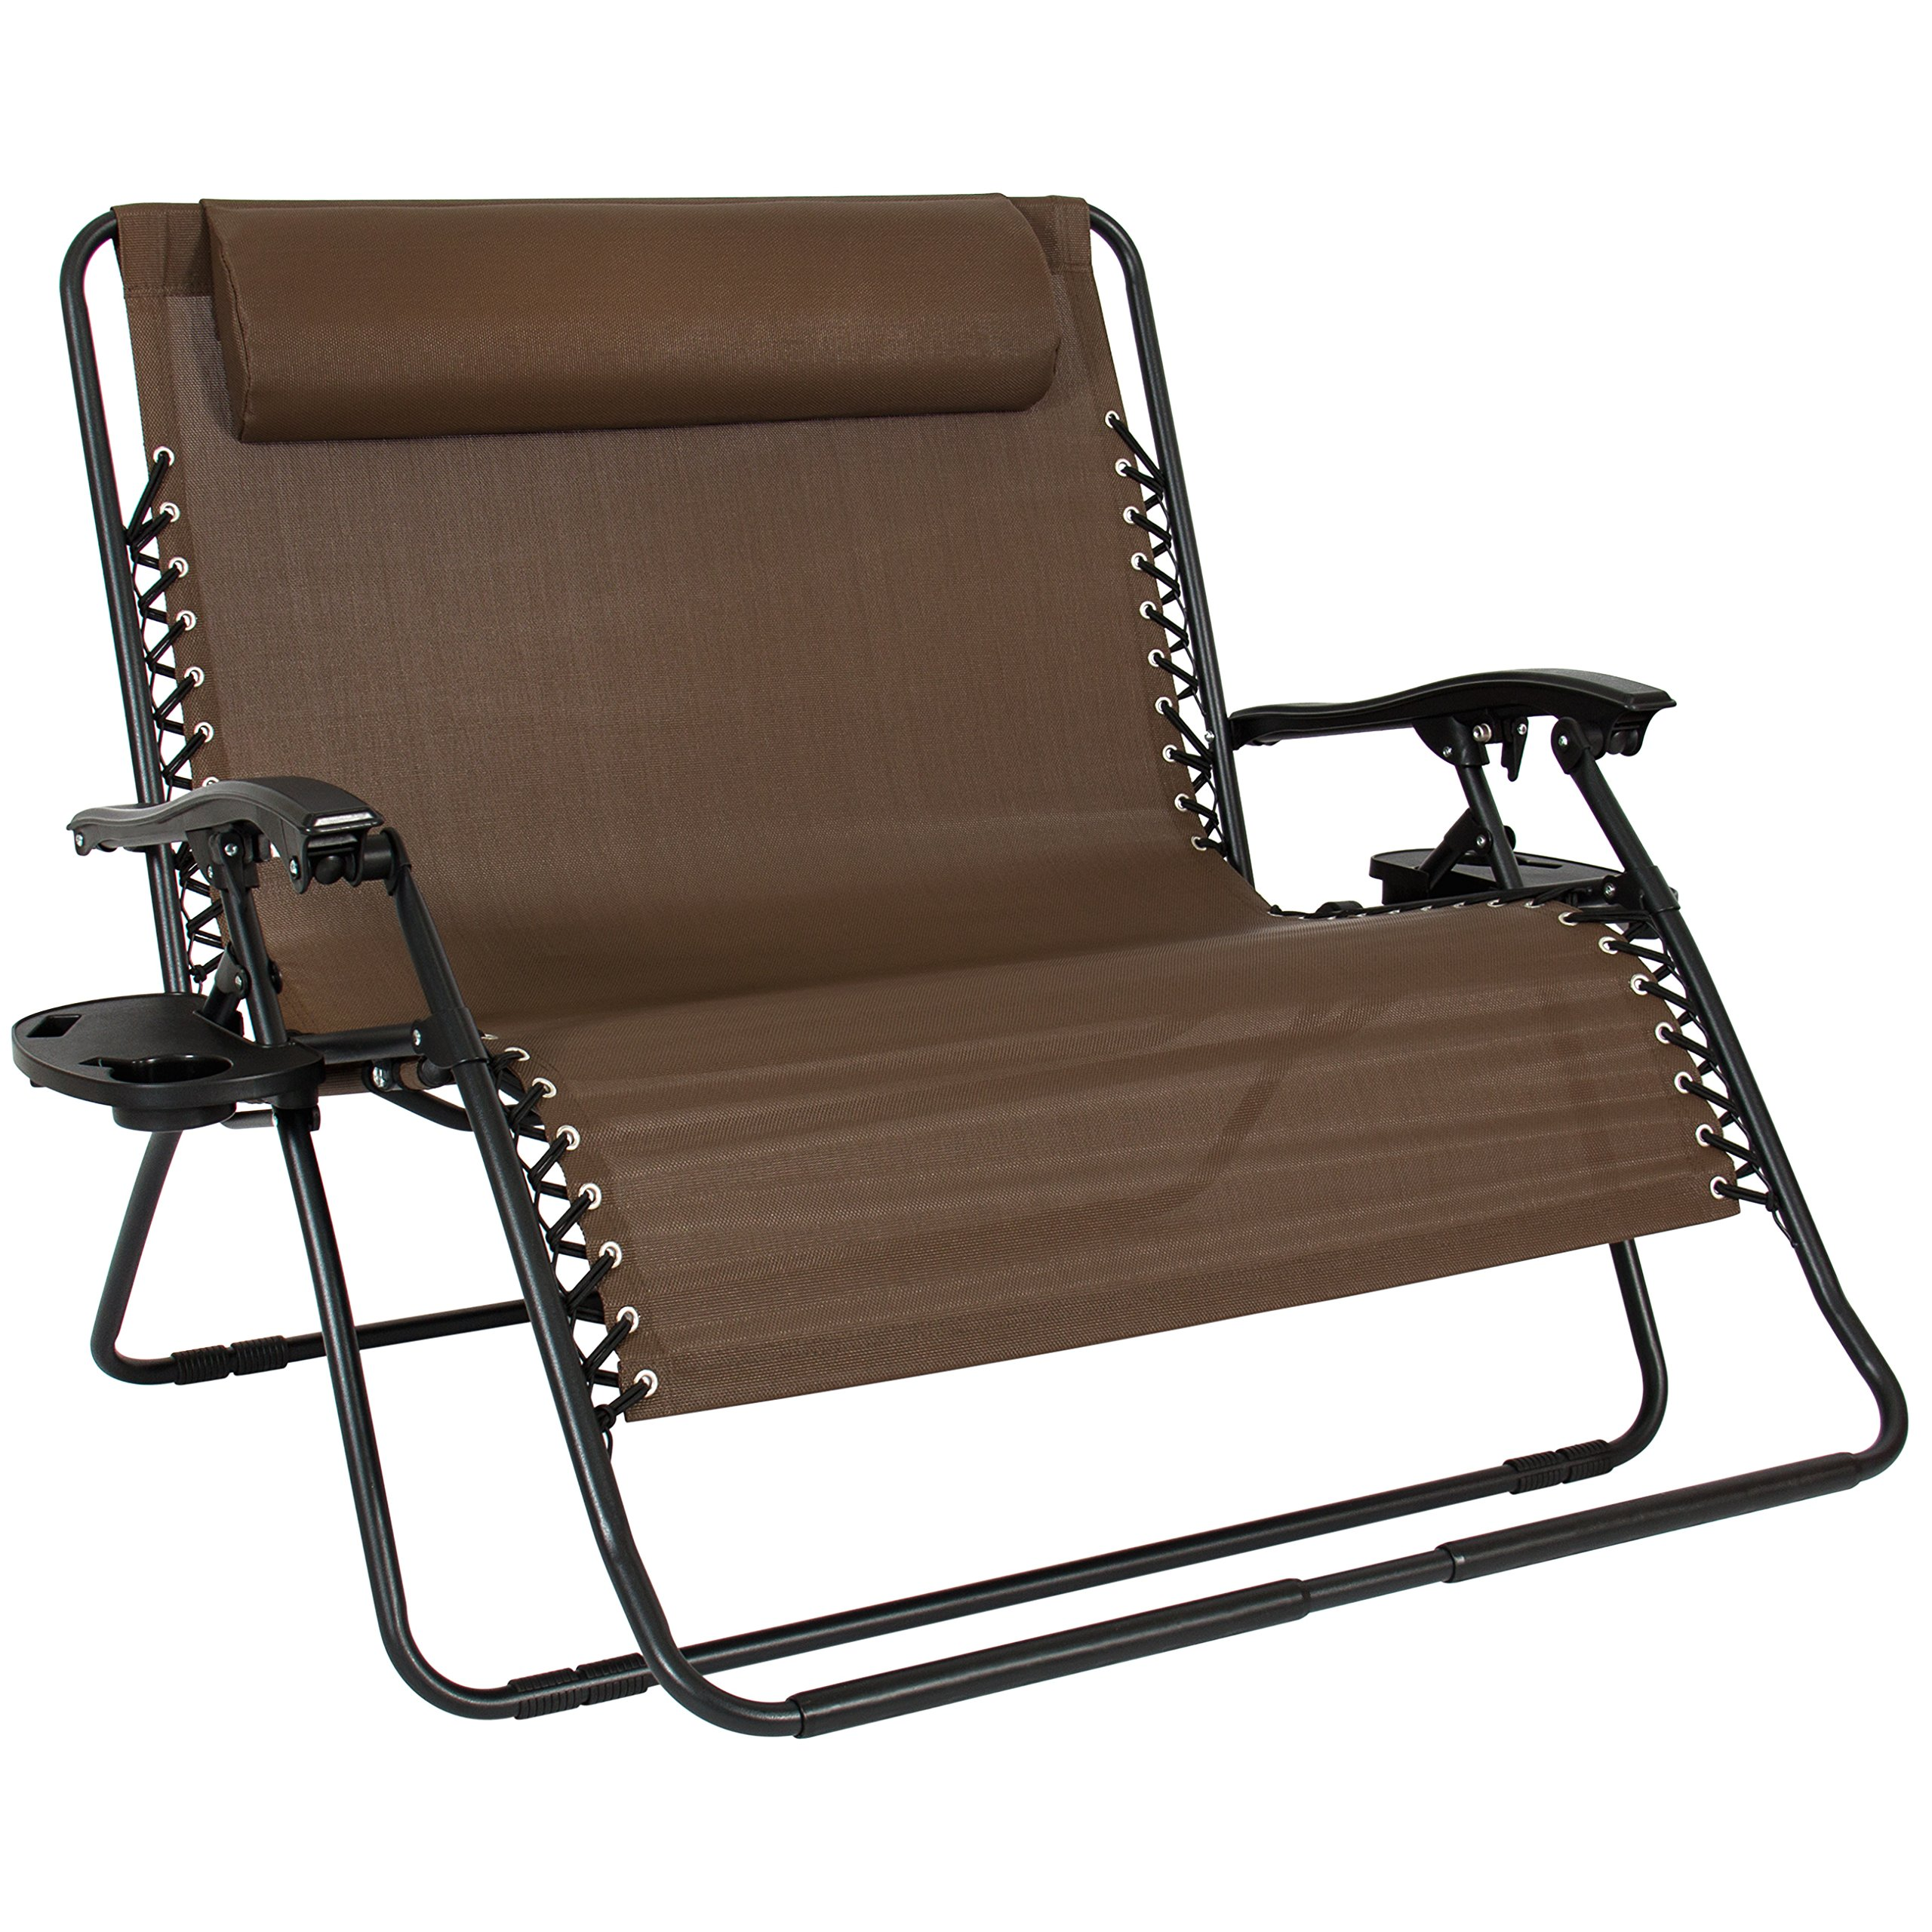 Folding 2 Person Lounge Chair Zero Gravity Outdoor Patio Camping Beach 2  Trays